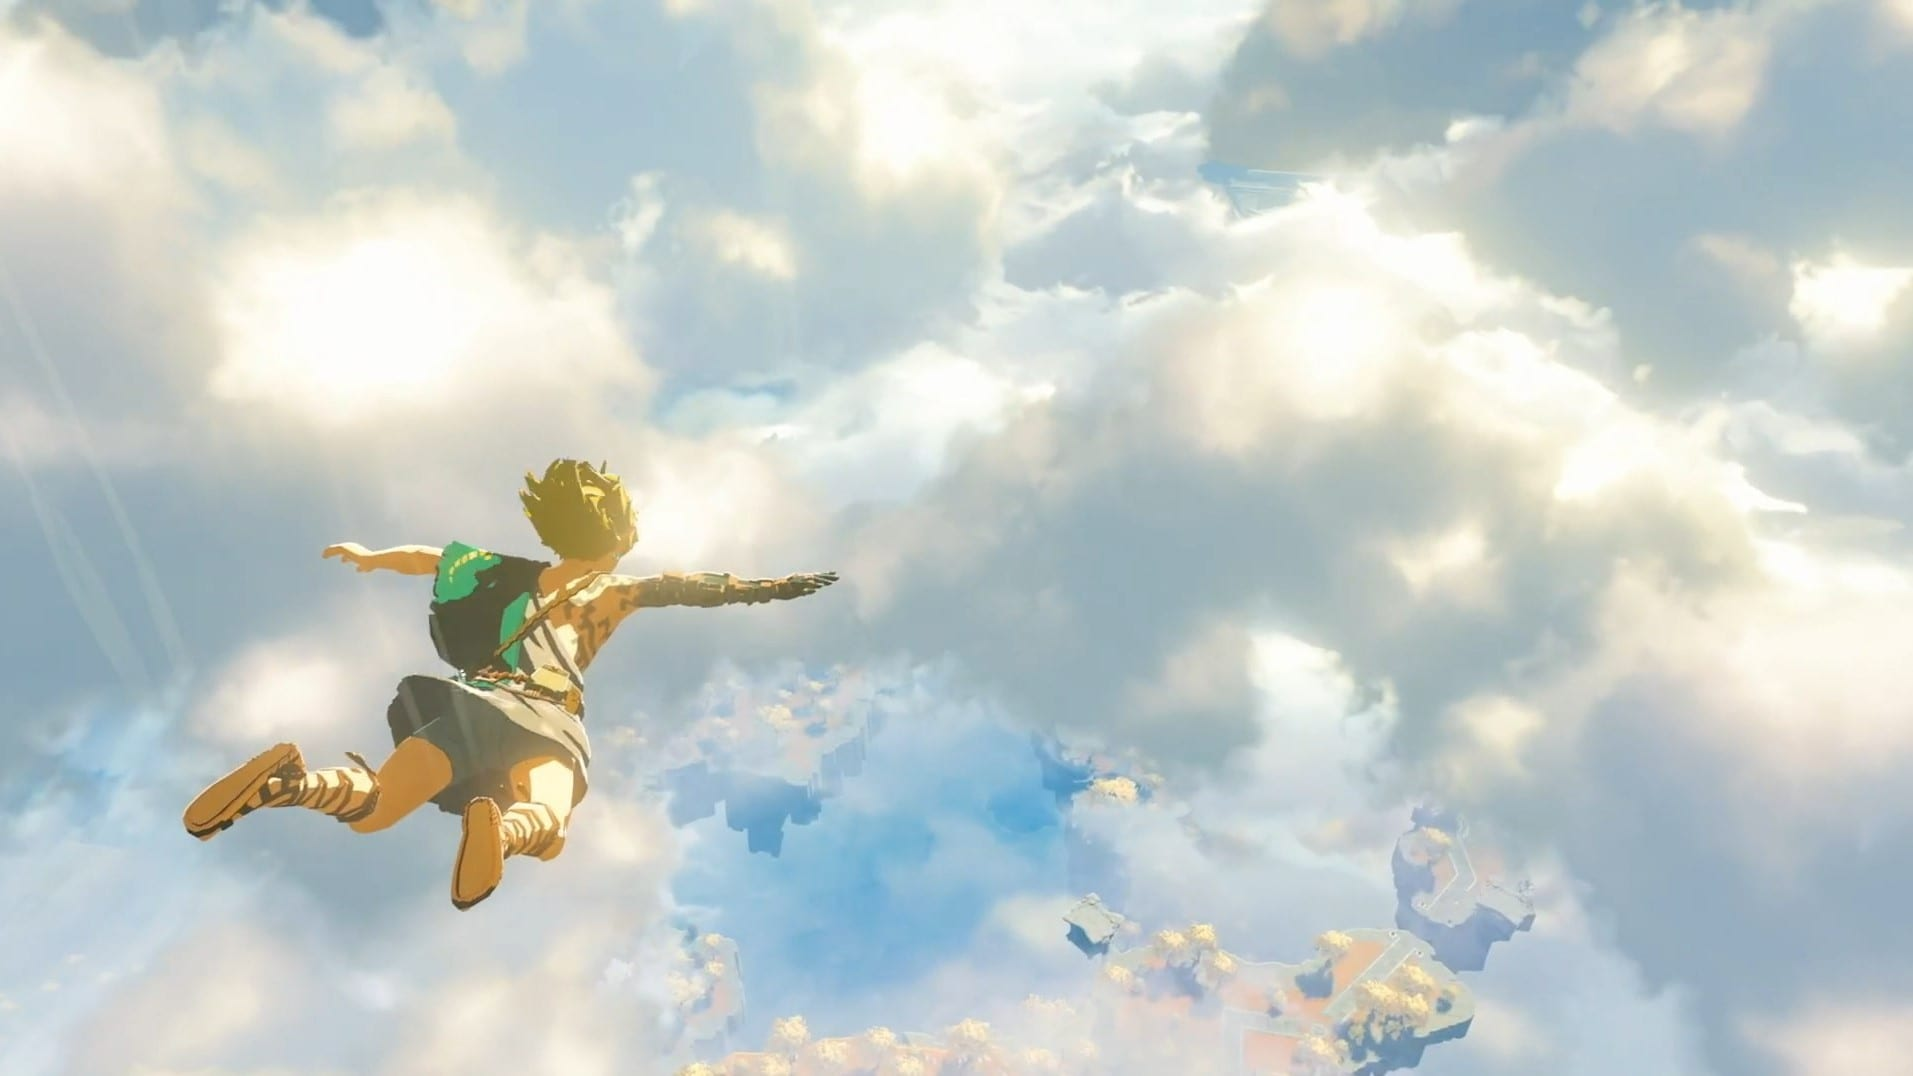 Breath Of The Wild 2 Gameplay Shown At E3. Out Next Year